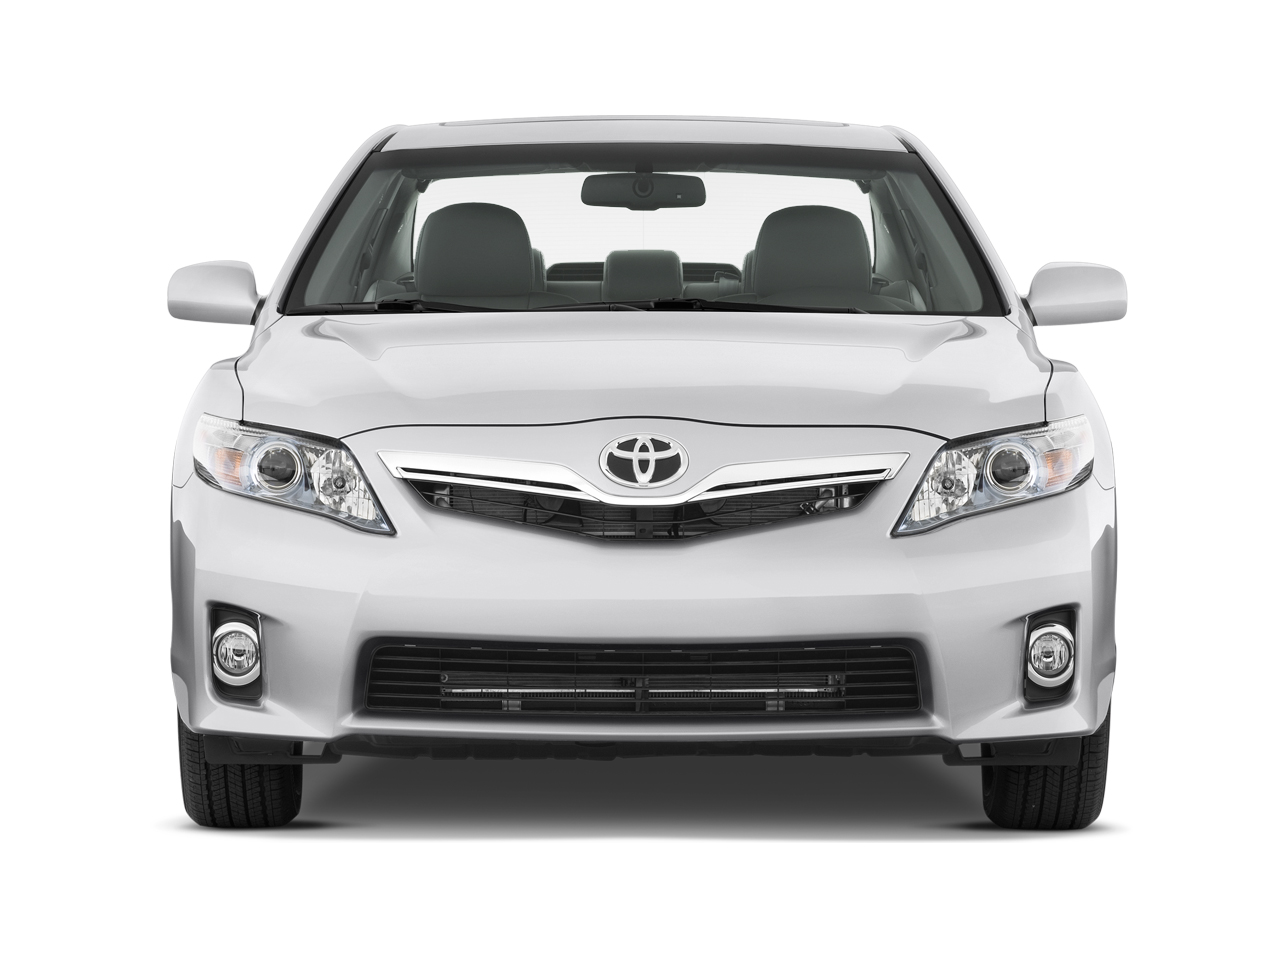 glass replacement s hybrid passenger prices quotes camry door side windshield doors make local front toyota cost auto